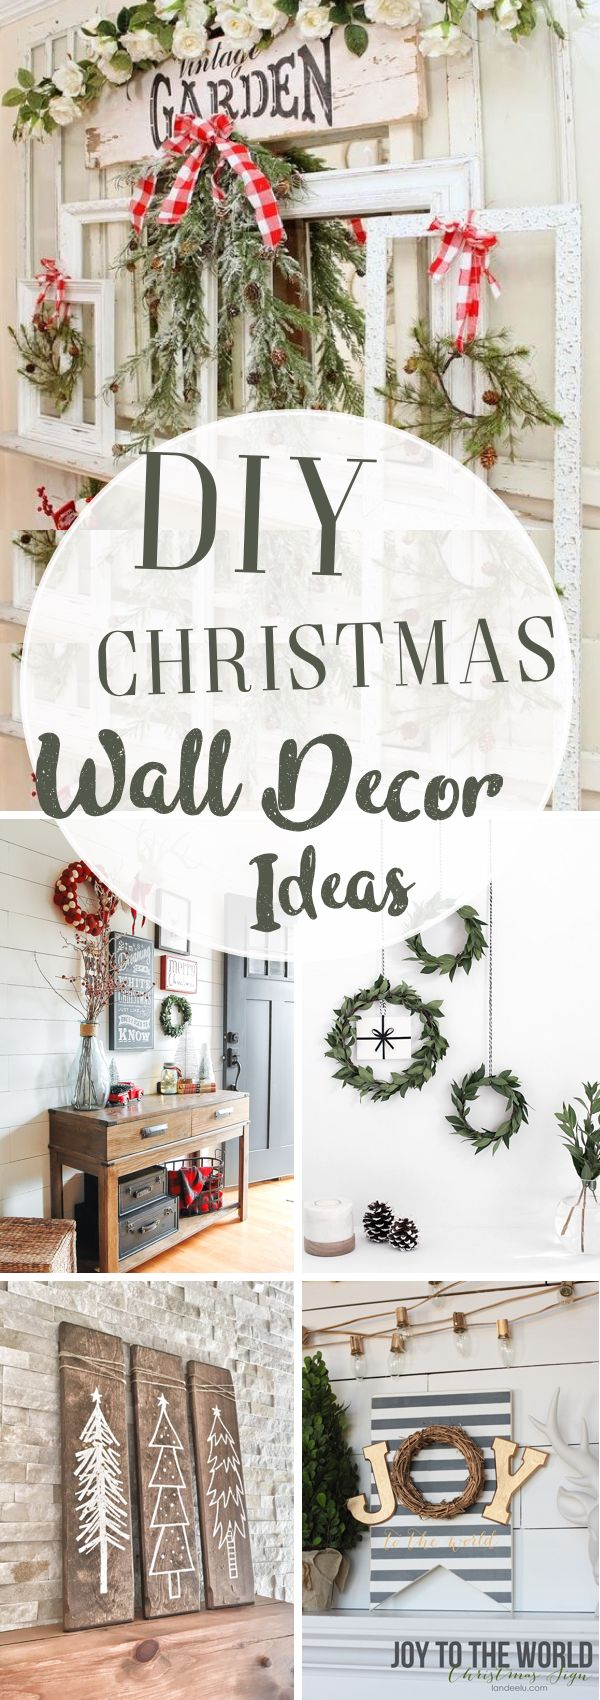 Best 25+ Christmas wall decorations ideas on Pinterest ...